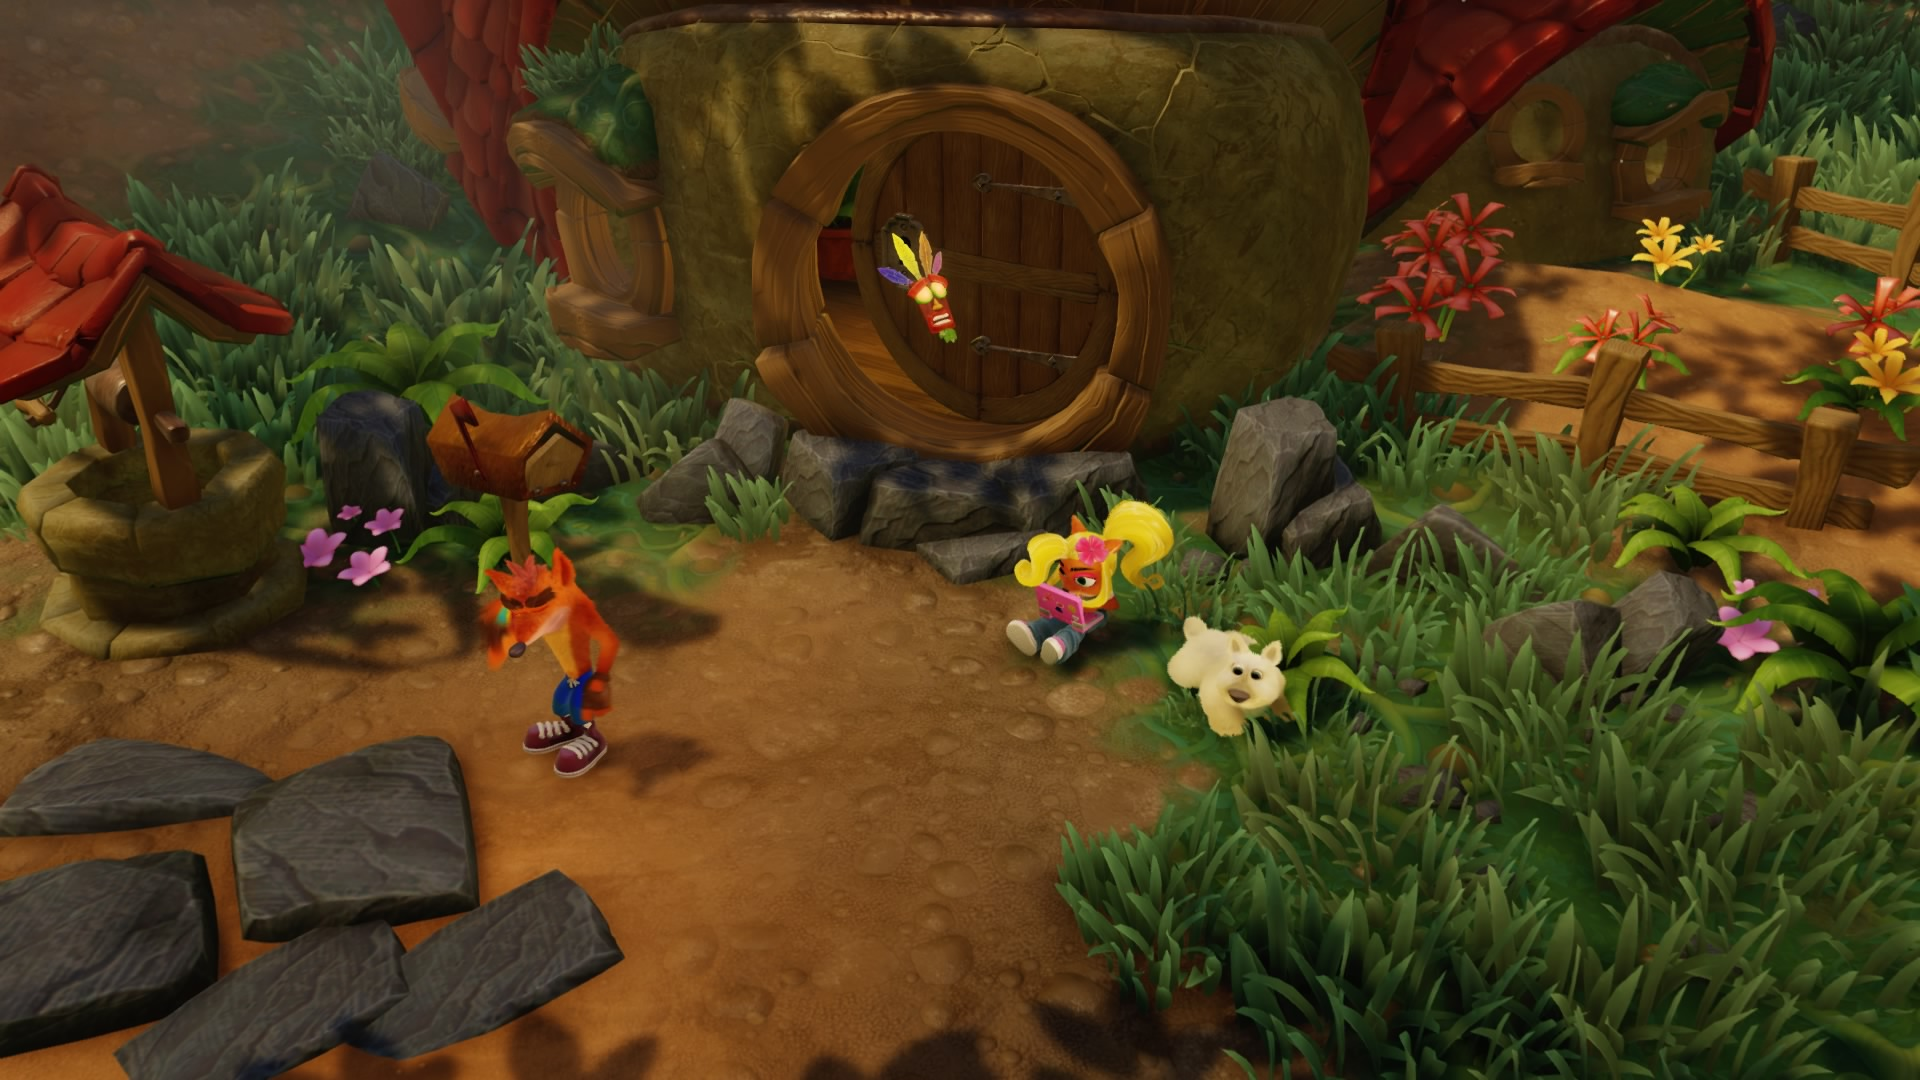 CrashBandicoot-NsaneTrilogy PS4 Test 013